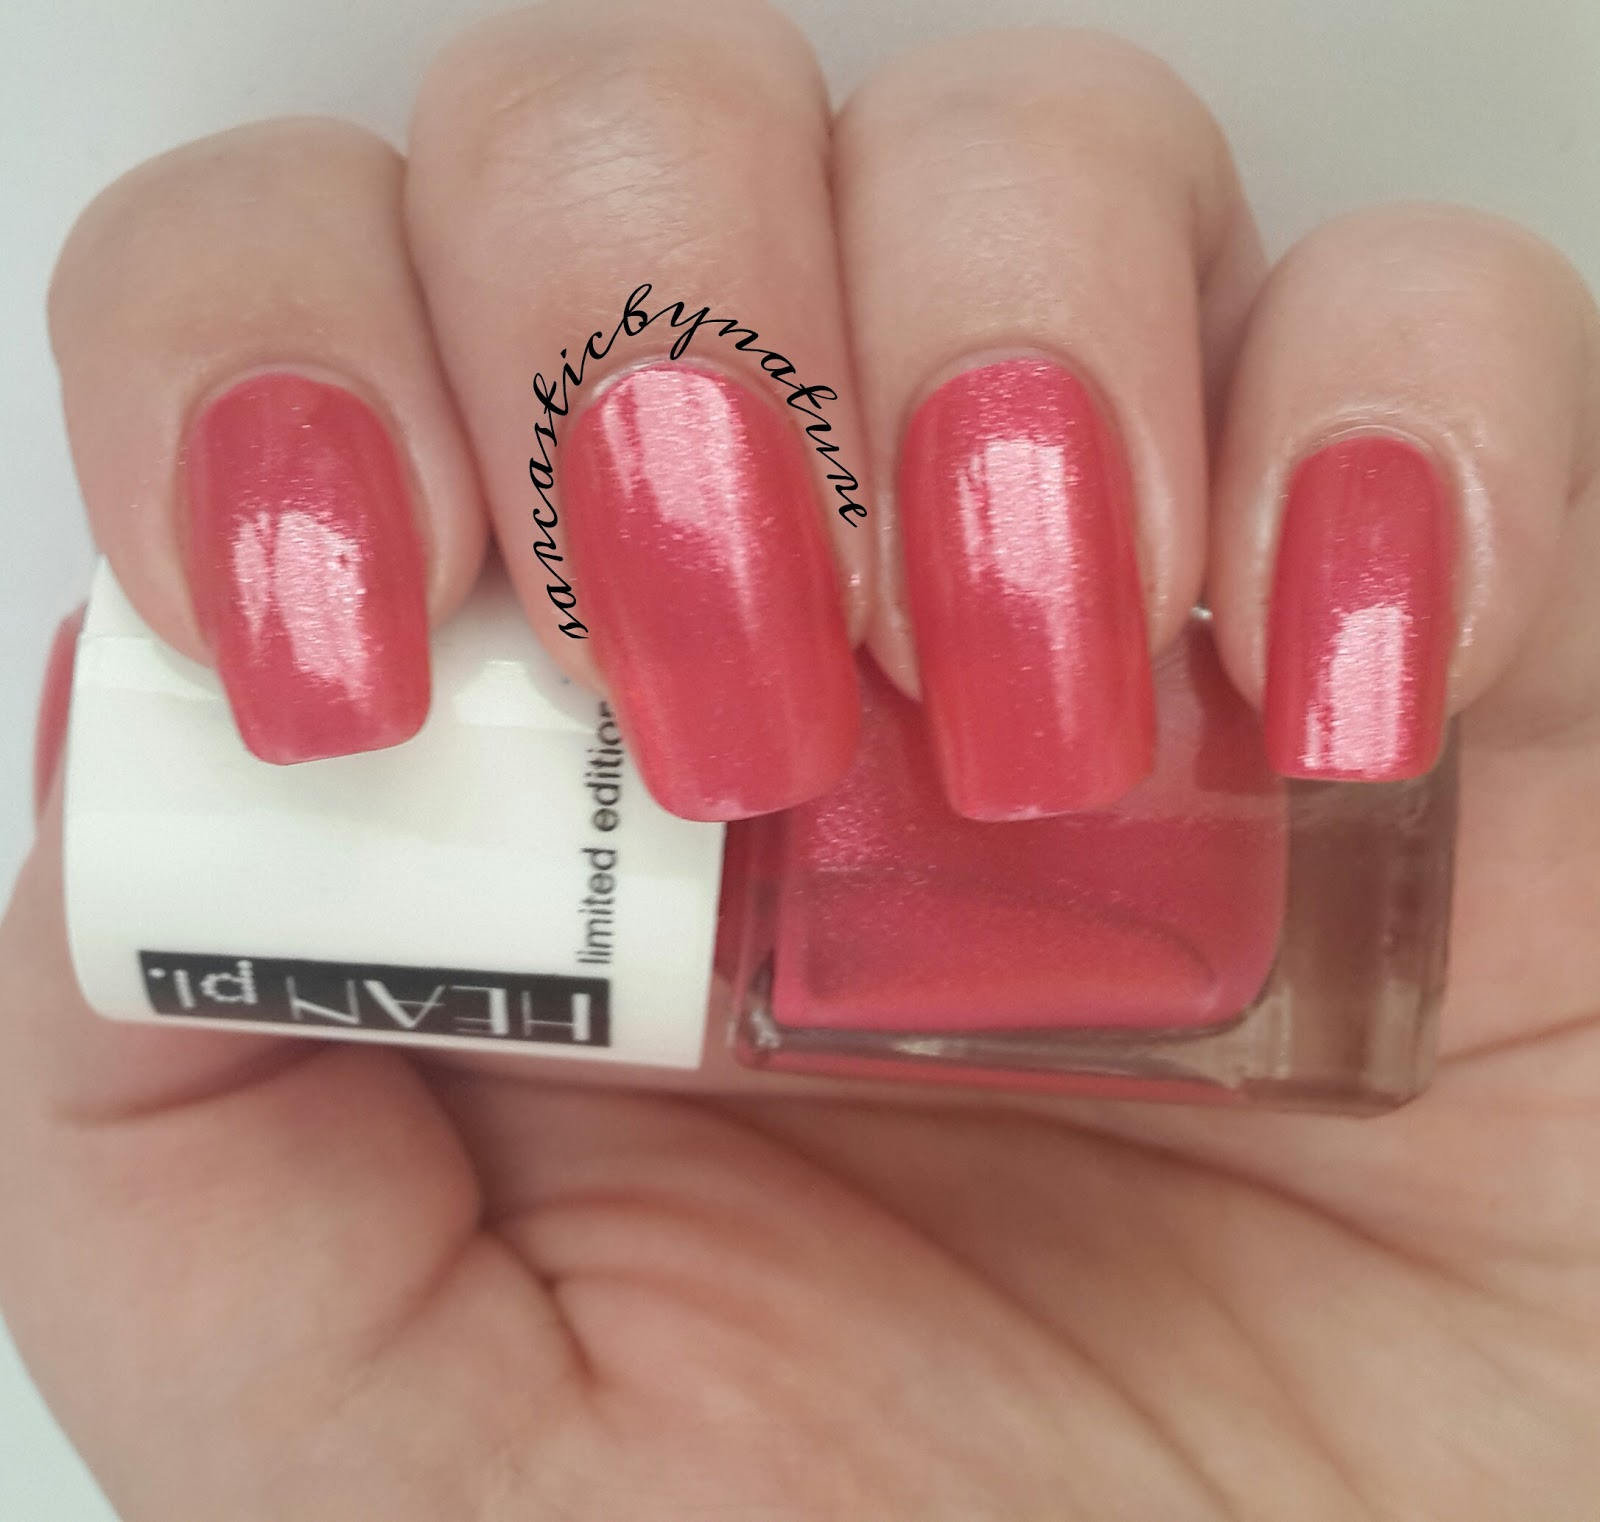 Sarcastic By Nature: Hean nail polish #272 - Jungle Pop collection